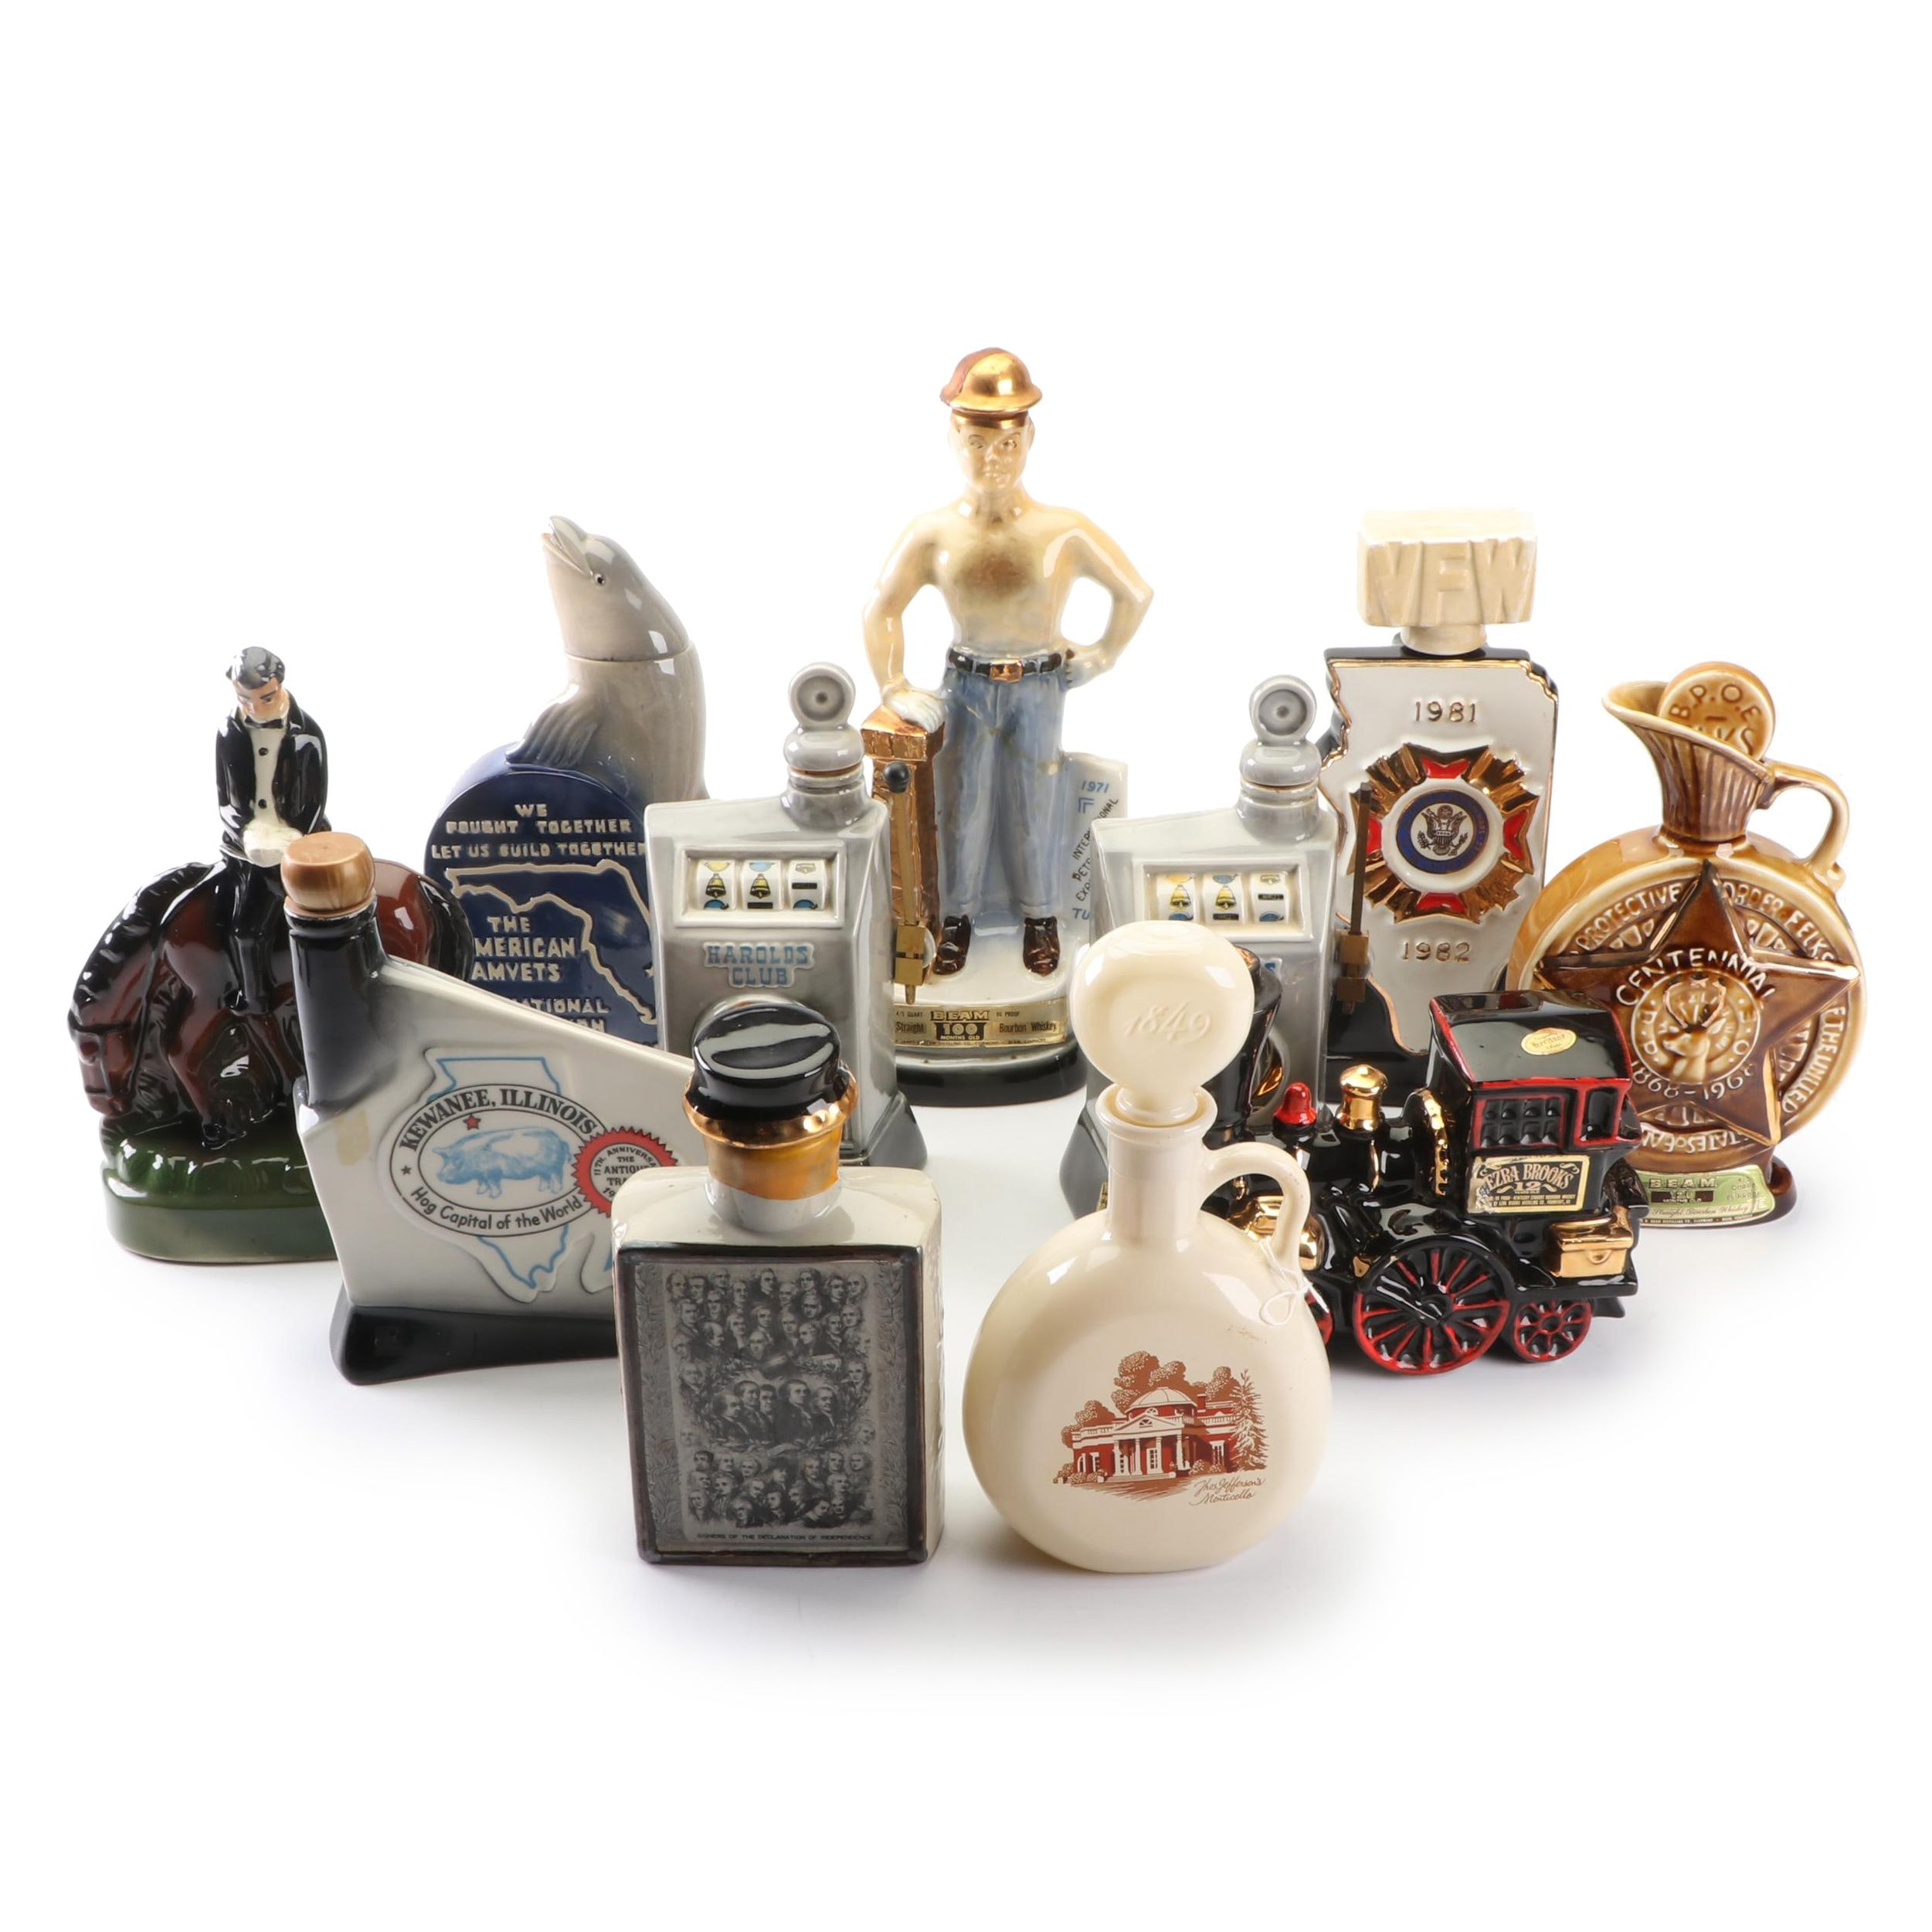 Novelty Decanters Featuring World War II Dolphin, Ezra Brooks Train and More